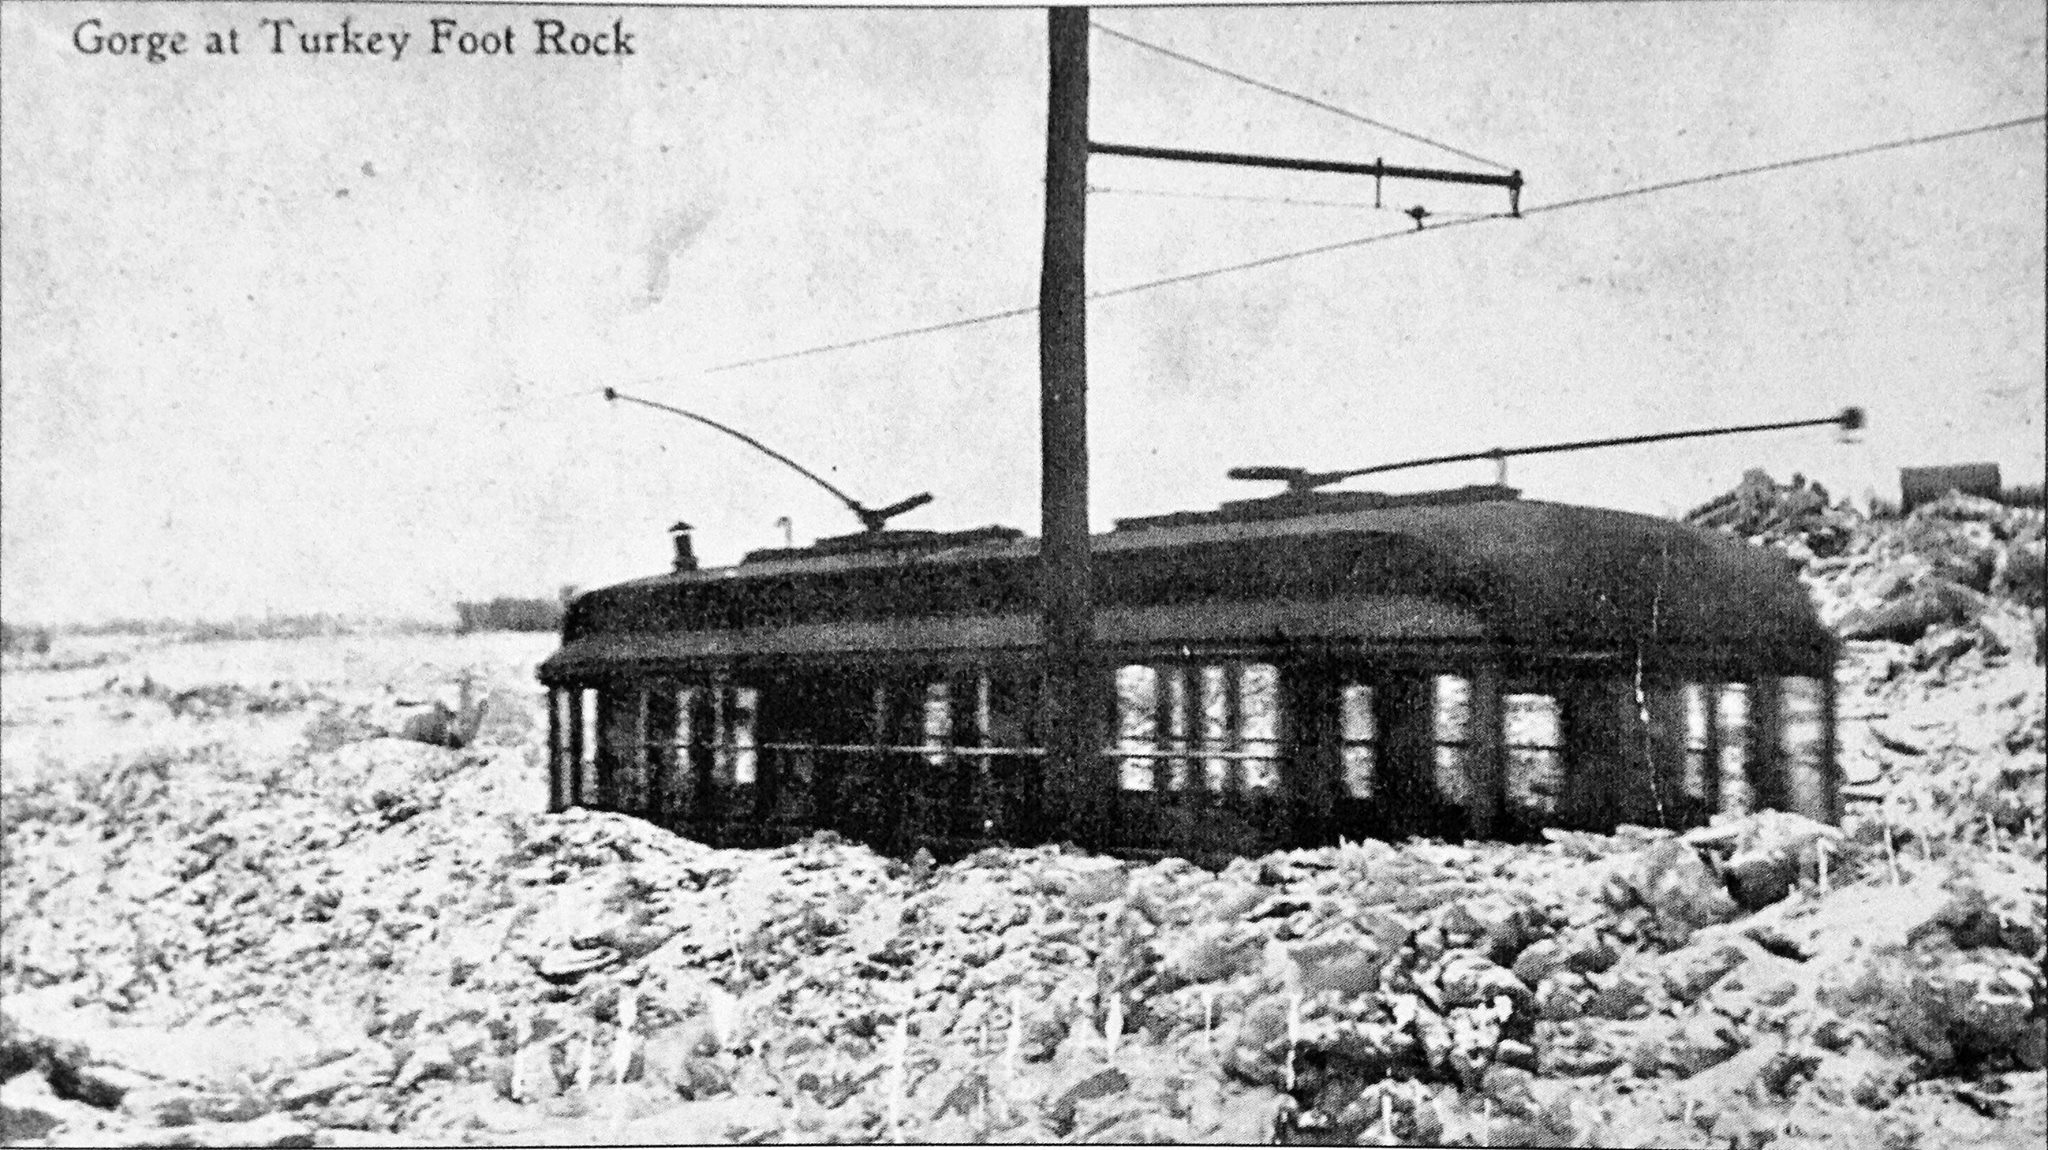 Apparently this was adjacent to the Turkey Foot Rock location just West of Jerome Road and the crossover point..jpg